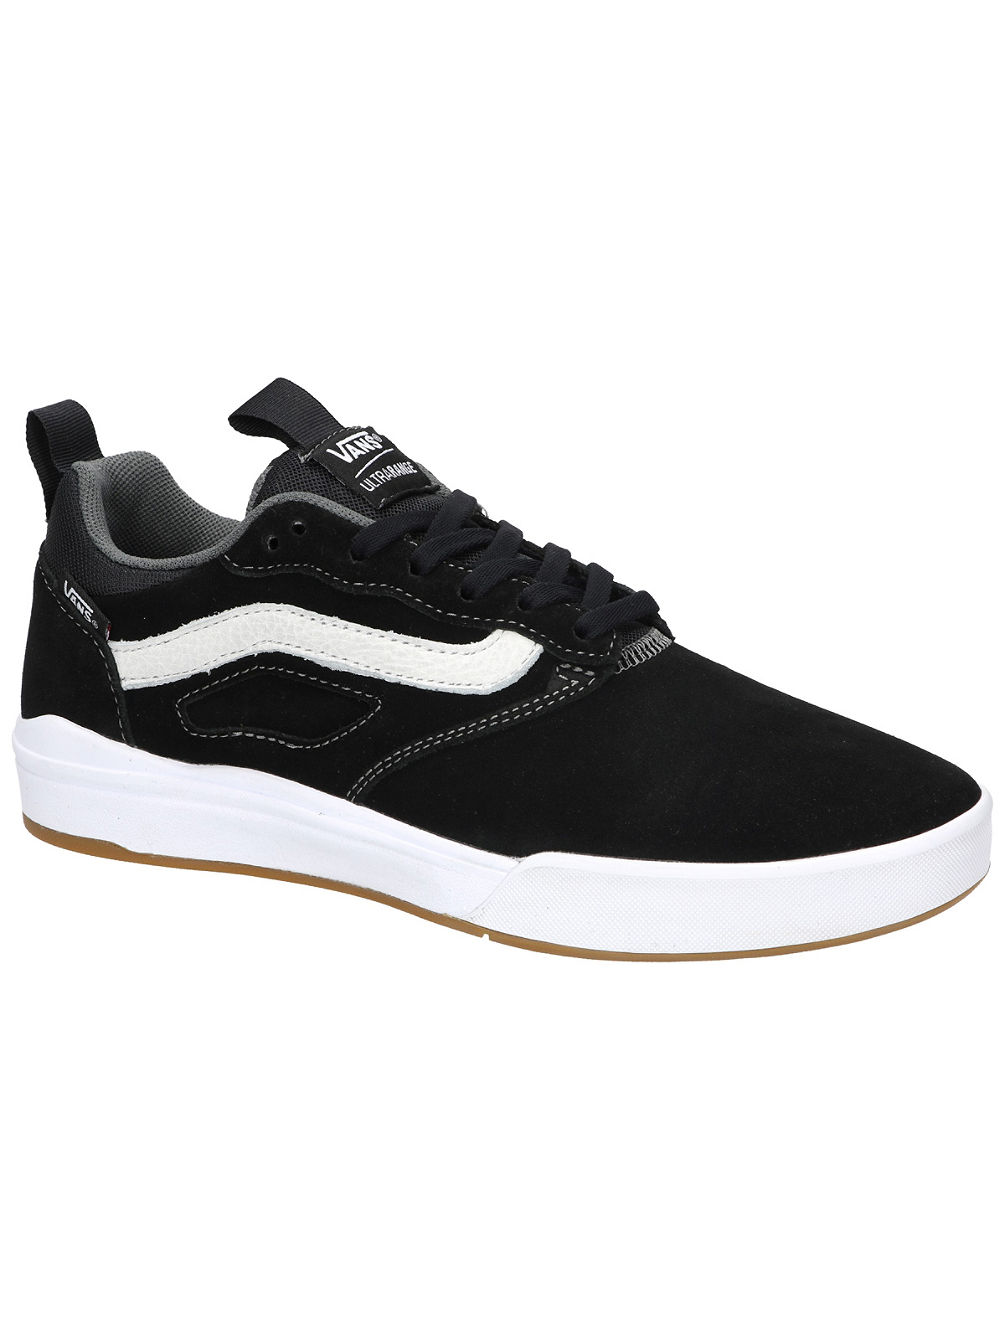 Ultrarange Pro Skate Shoes